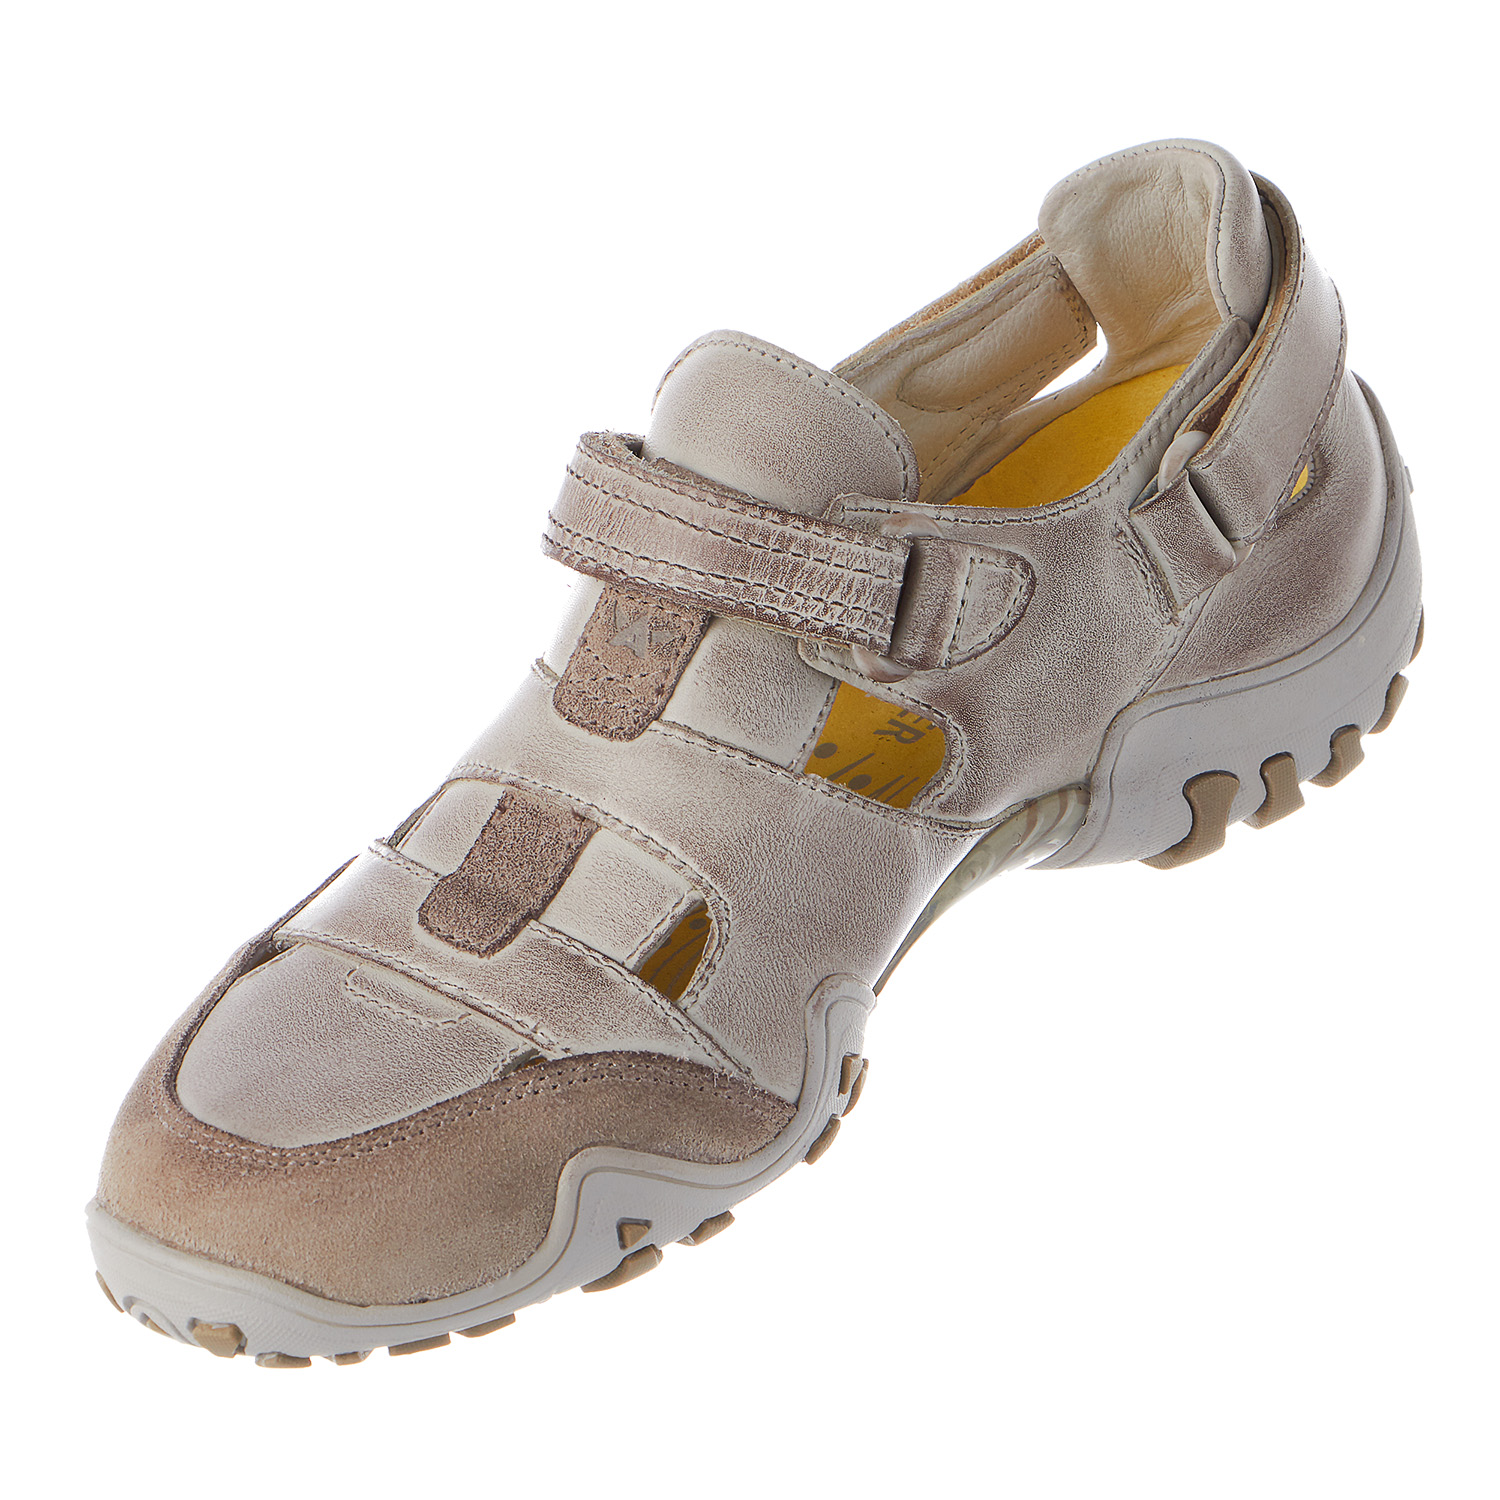 Allrounder by Mephisto Firelli  - Womens Affordable and personalized shoes